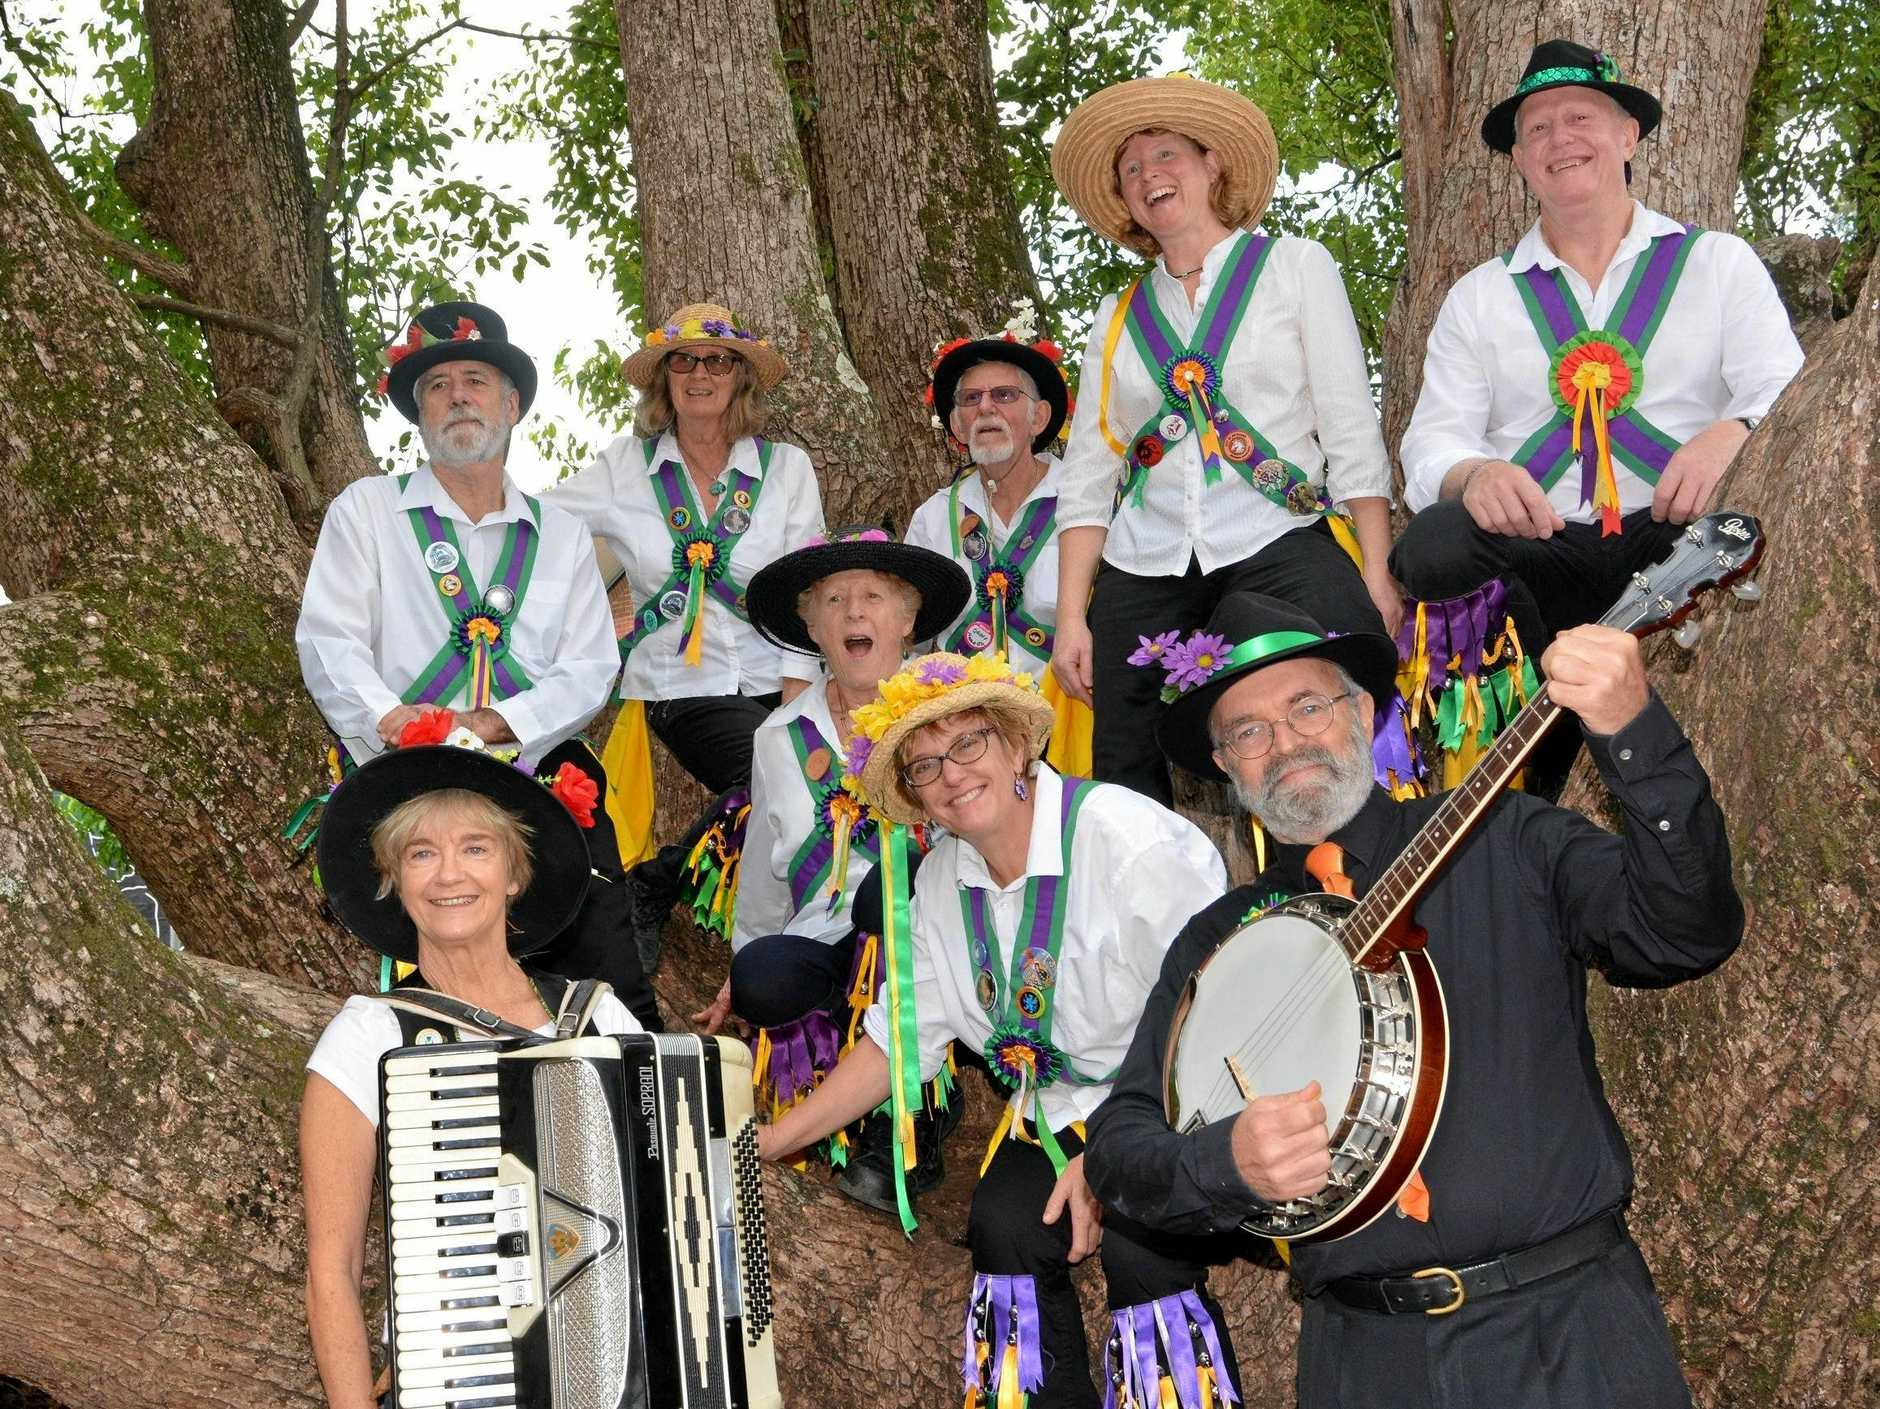 COLOUR AND ACTIVITY: Fiddle Stix Morris dancers colour up any event with dance and music.